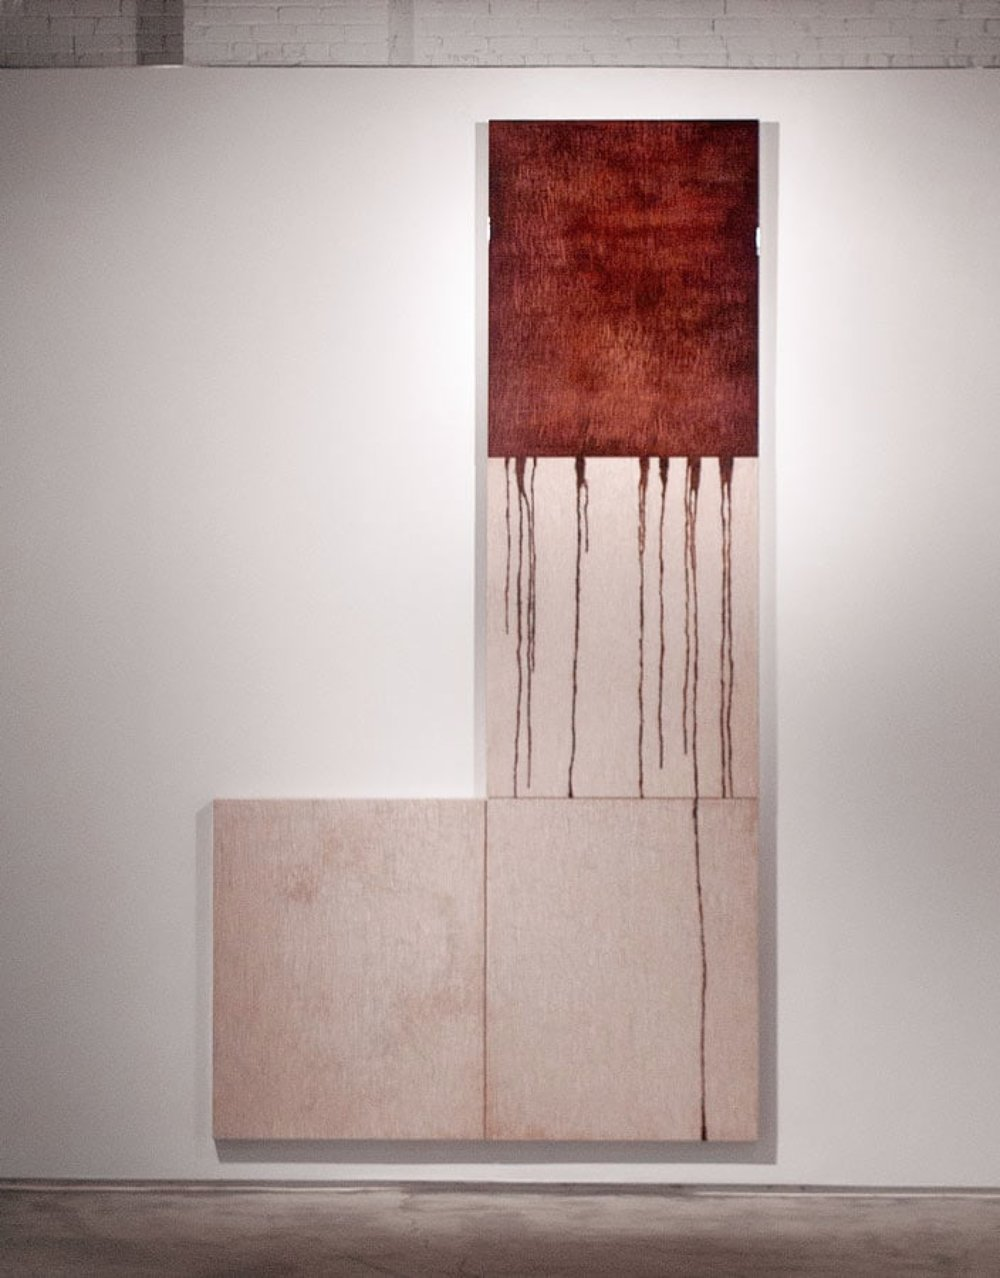 "ROZE 1-4, 2011 180 x 96 x 3"" blood, gauze, preserved on plexiglass, UV resin"